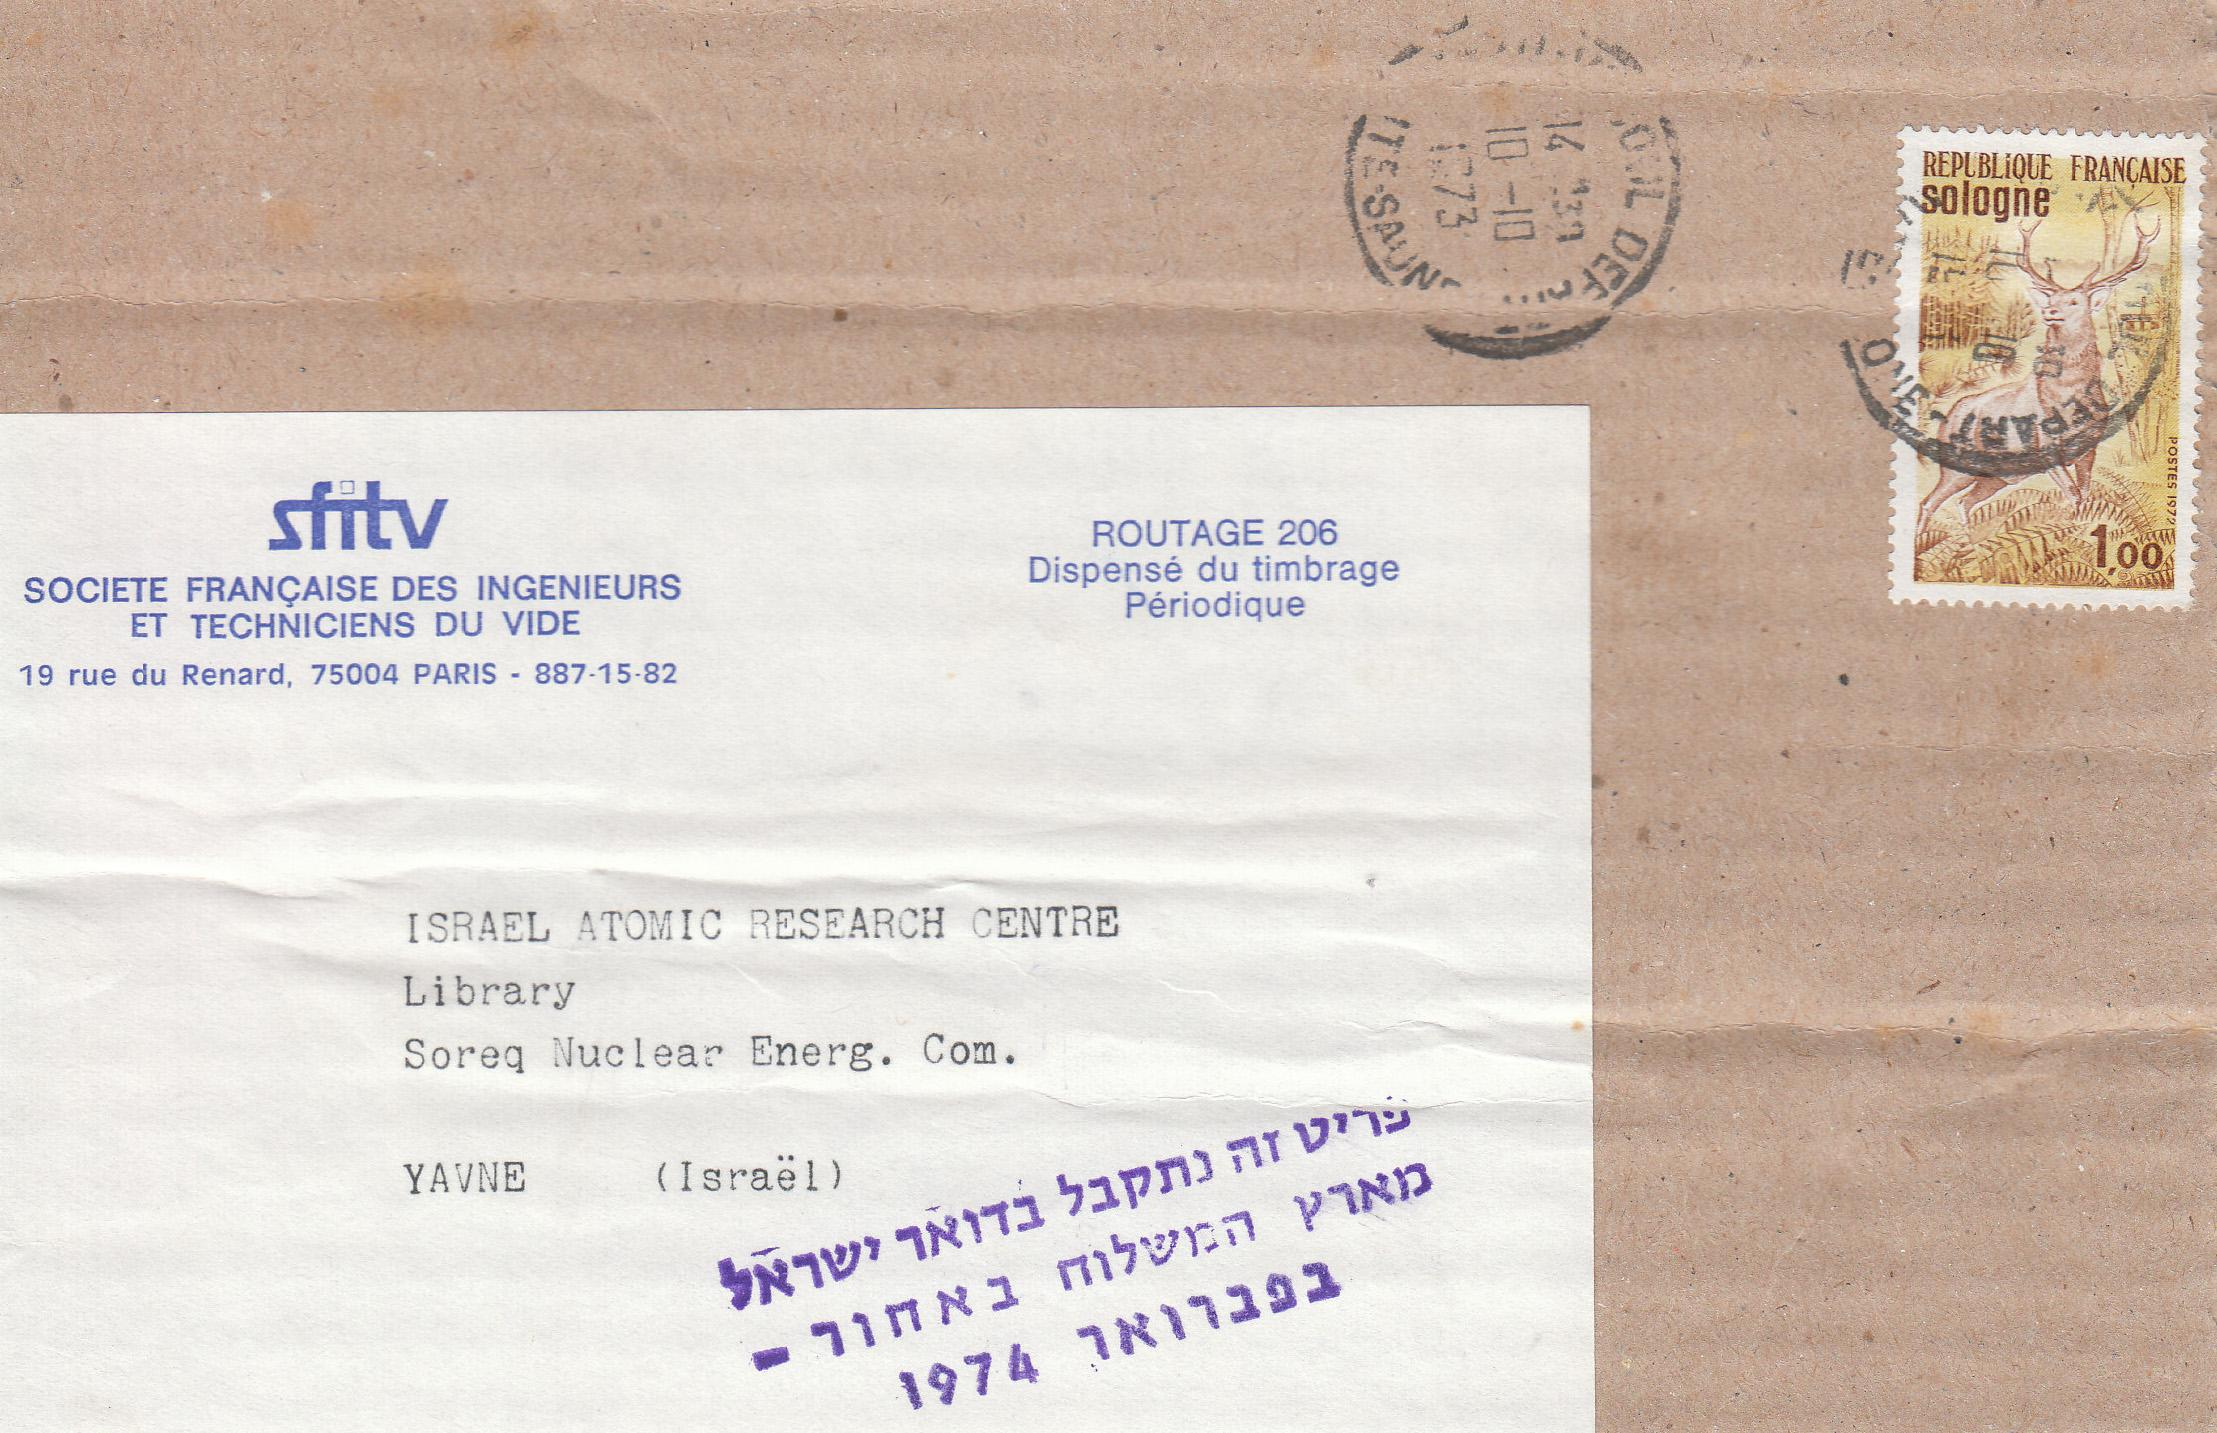 Lot 1283 - PH: 1973 War Arab-Israeli mail  -  Historama HISTORAMA AUCTION #7 - 'Buy or Bid' Sale